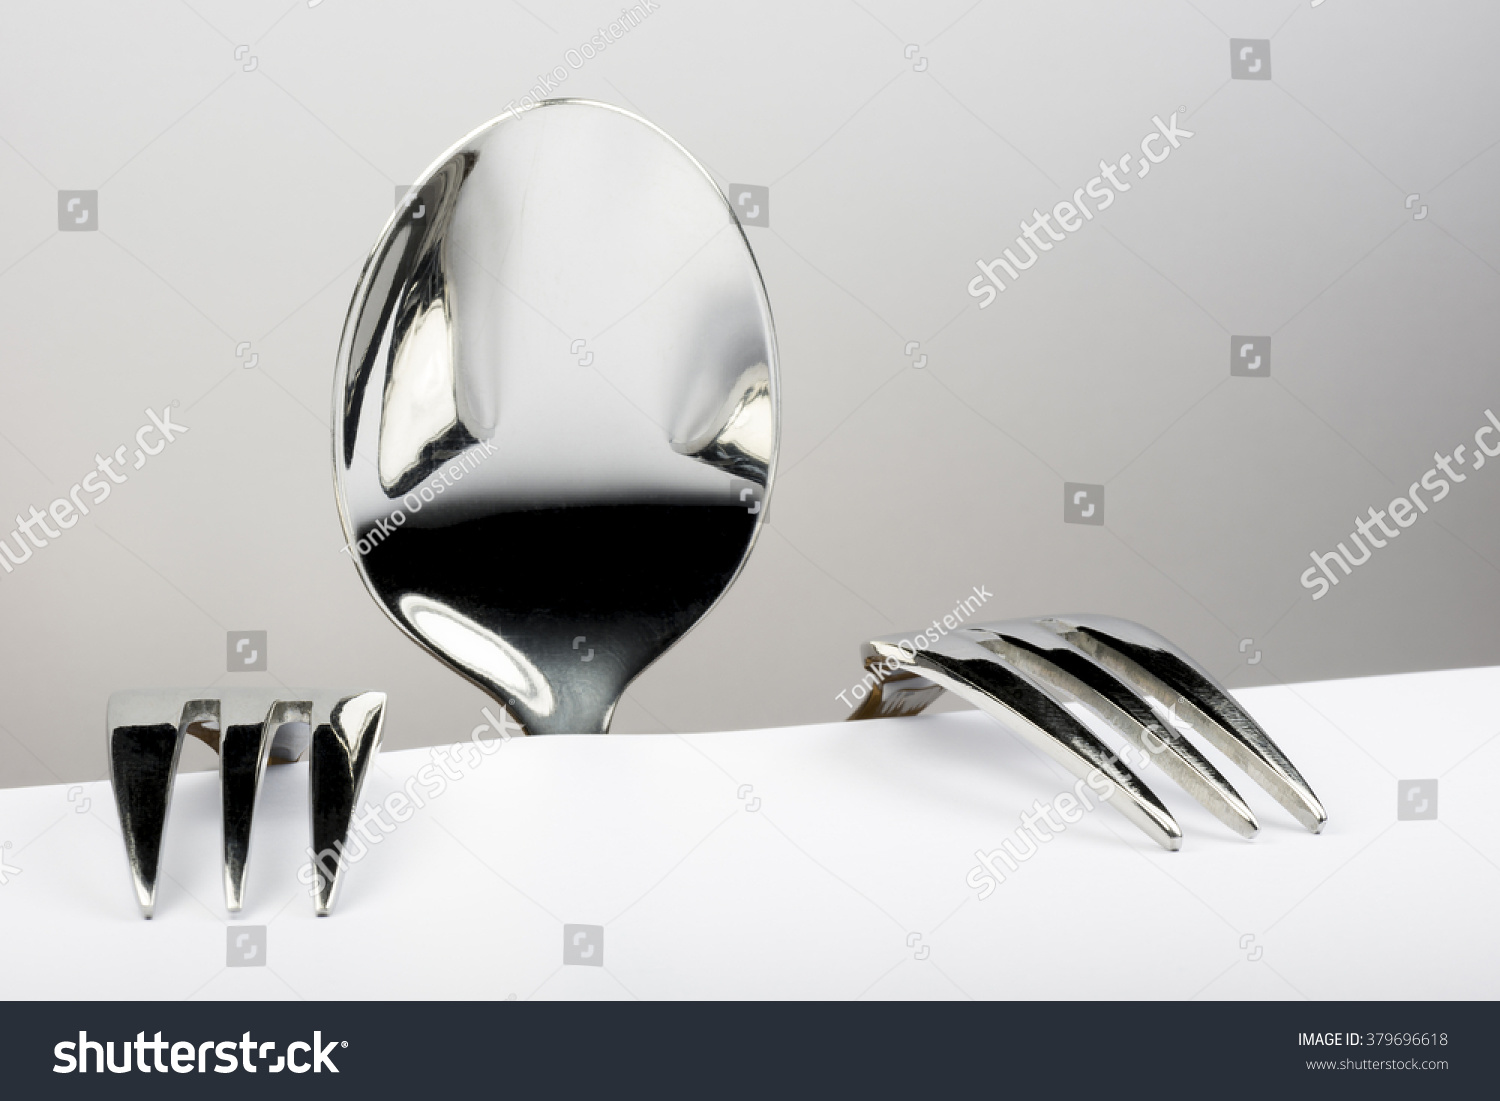 Spoon and two forks formed into conceptual figure #379696618